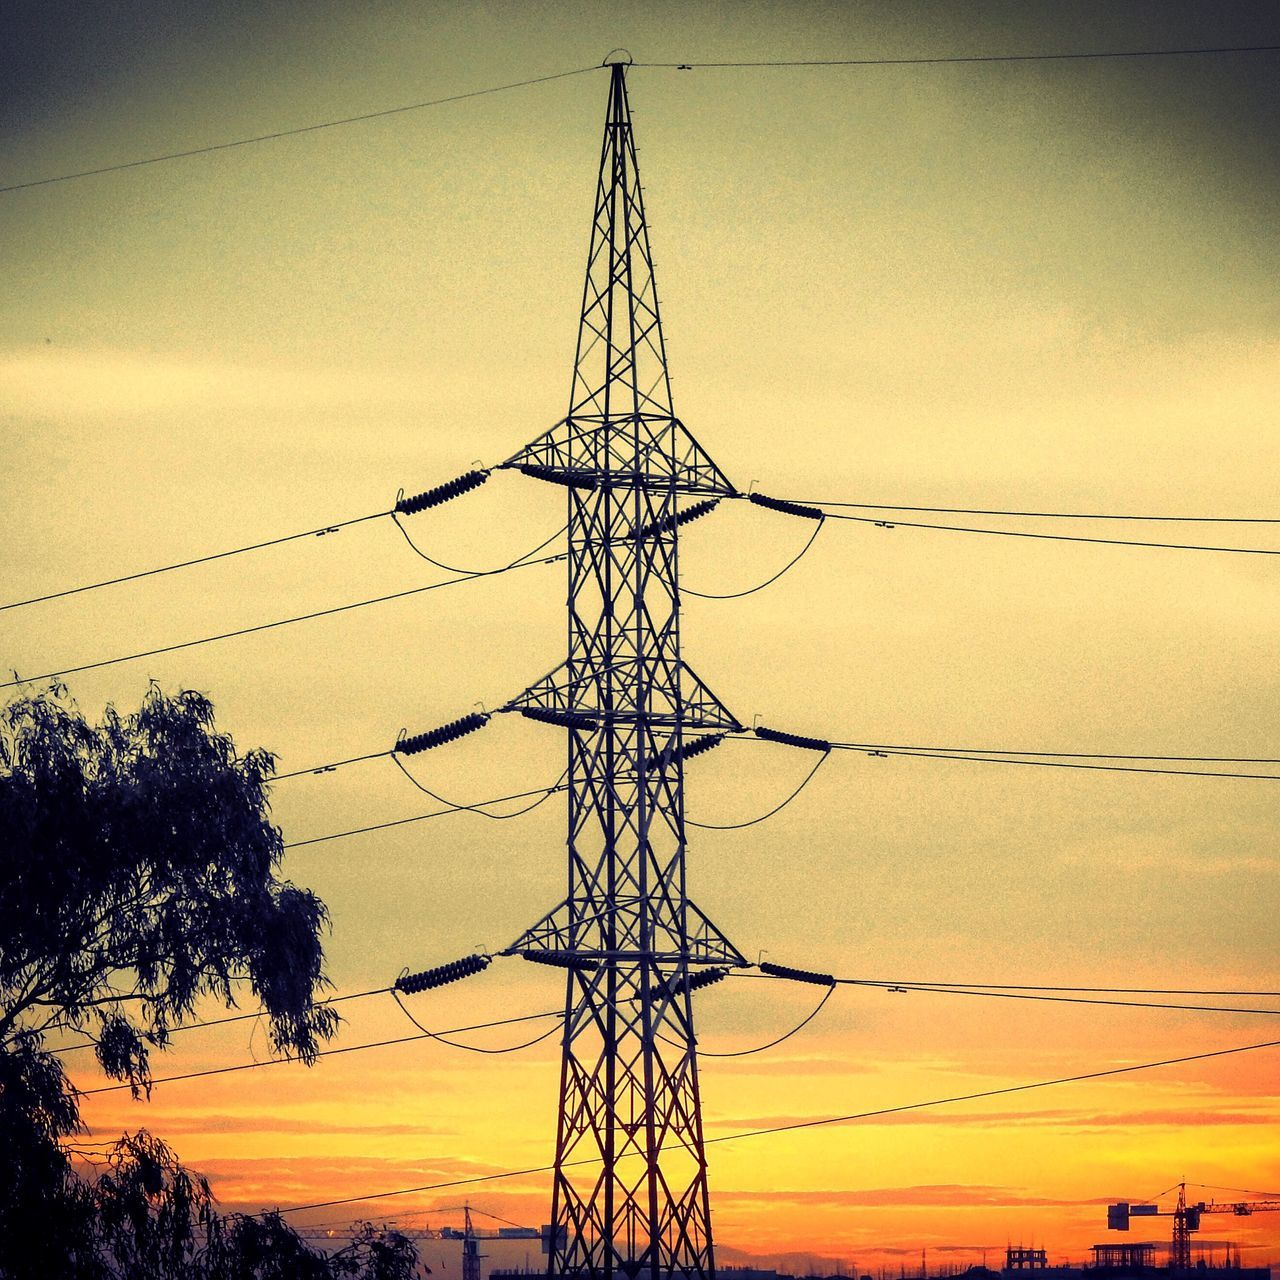 Silhouette Electricity Pylon Against Sky At Sunset